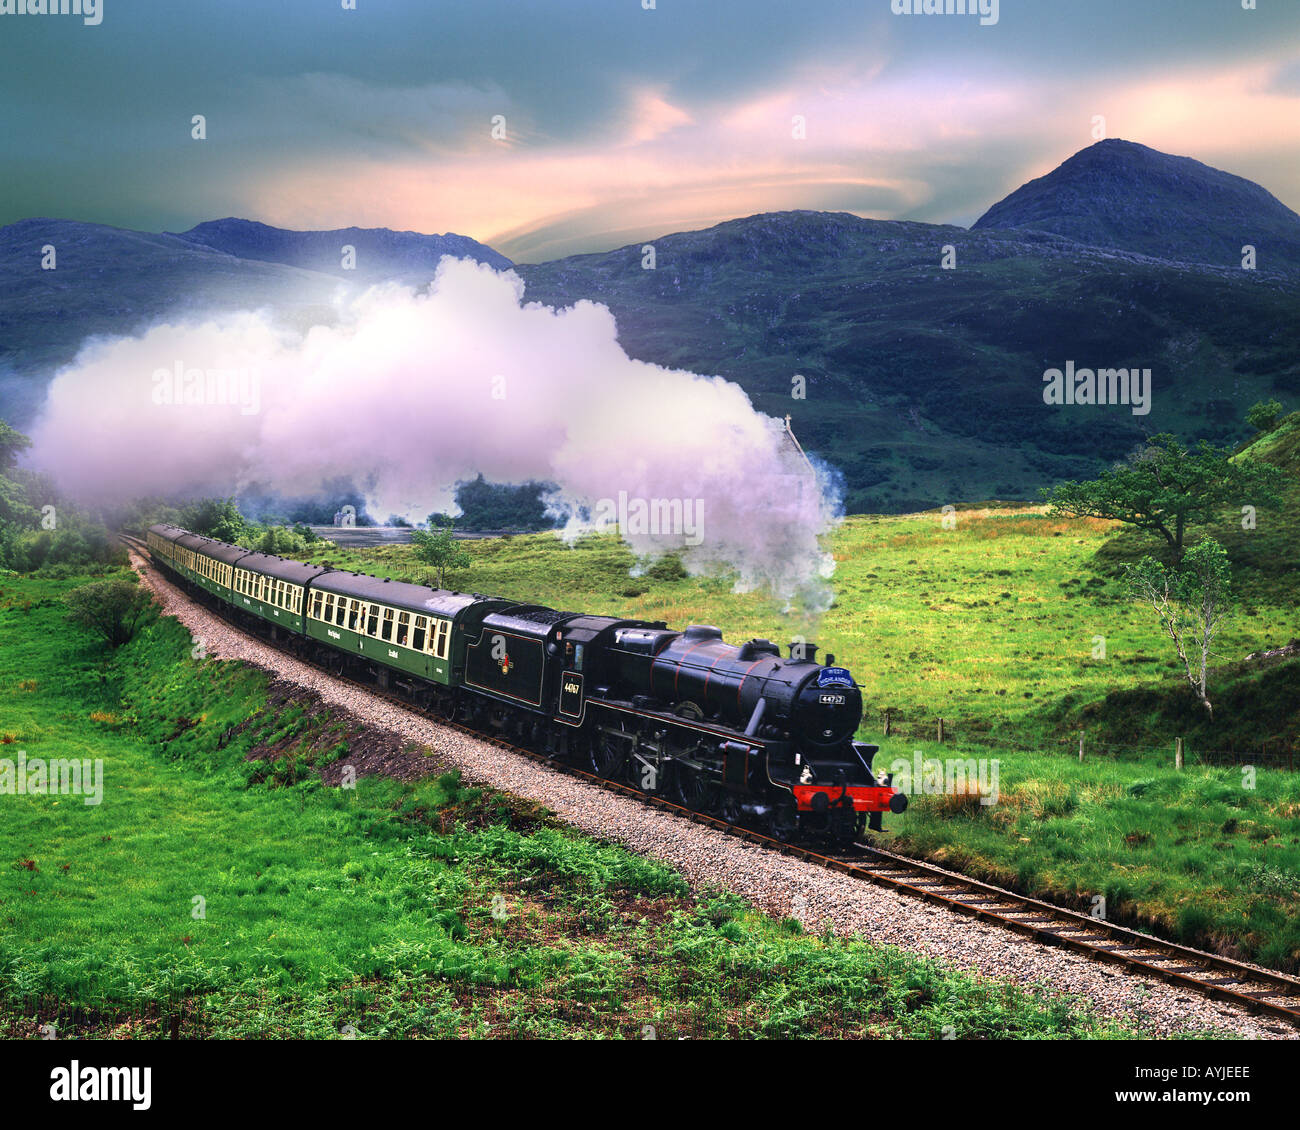 GB - Ecosse : 'Le Train à vapeur Jacobite' Photo Stock